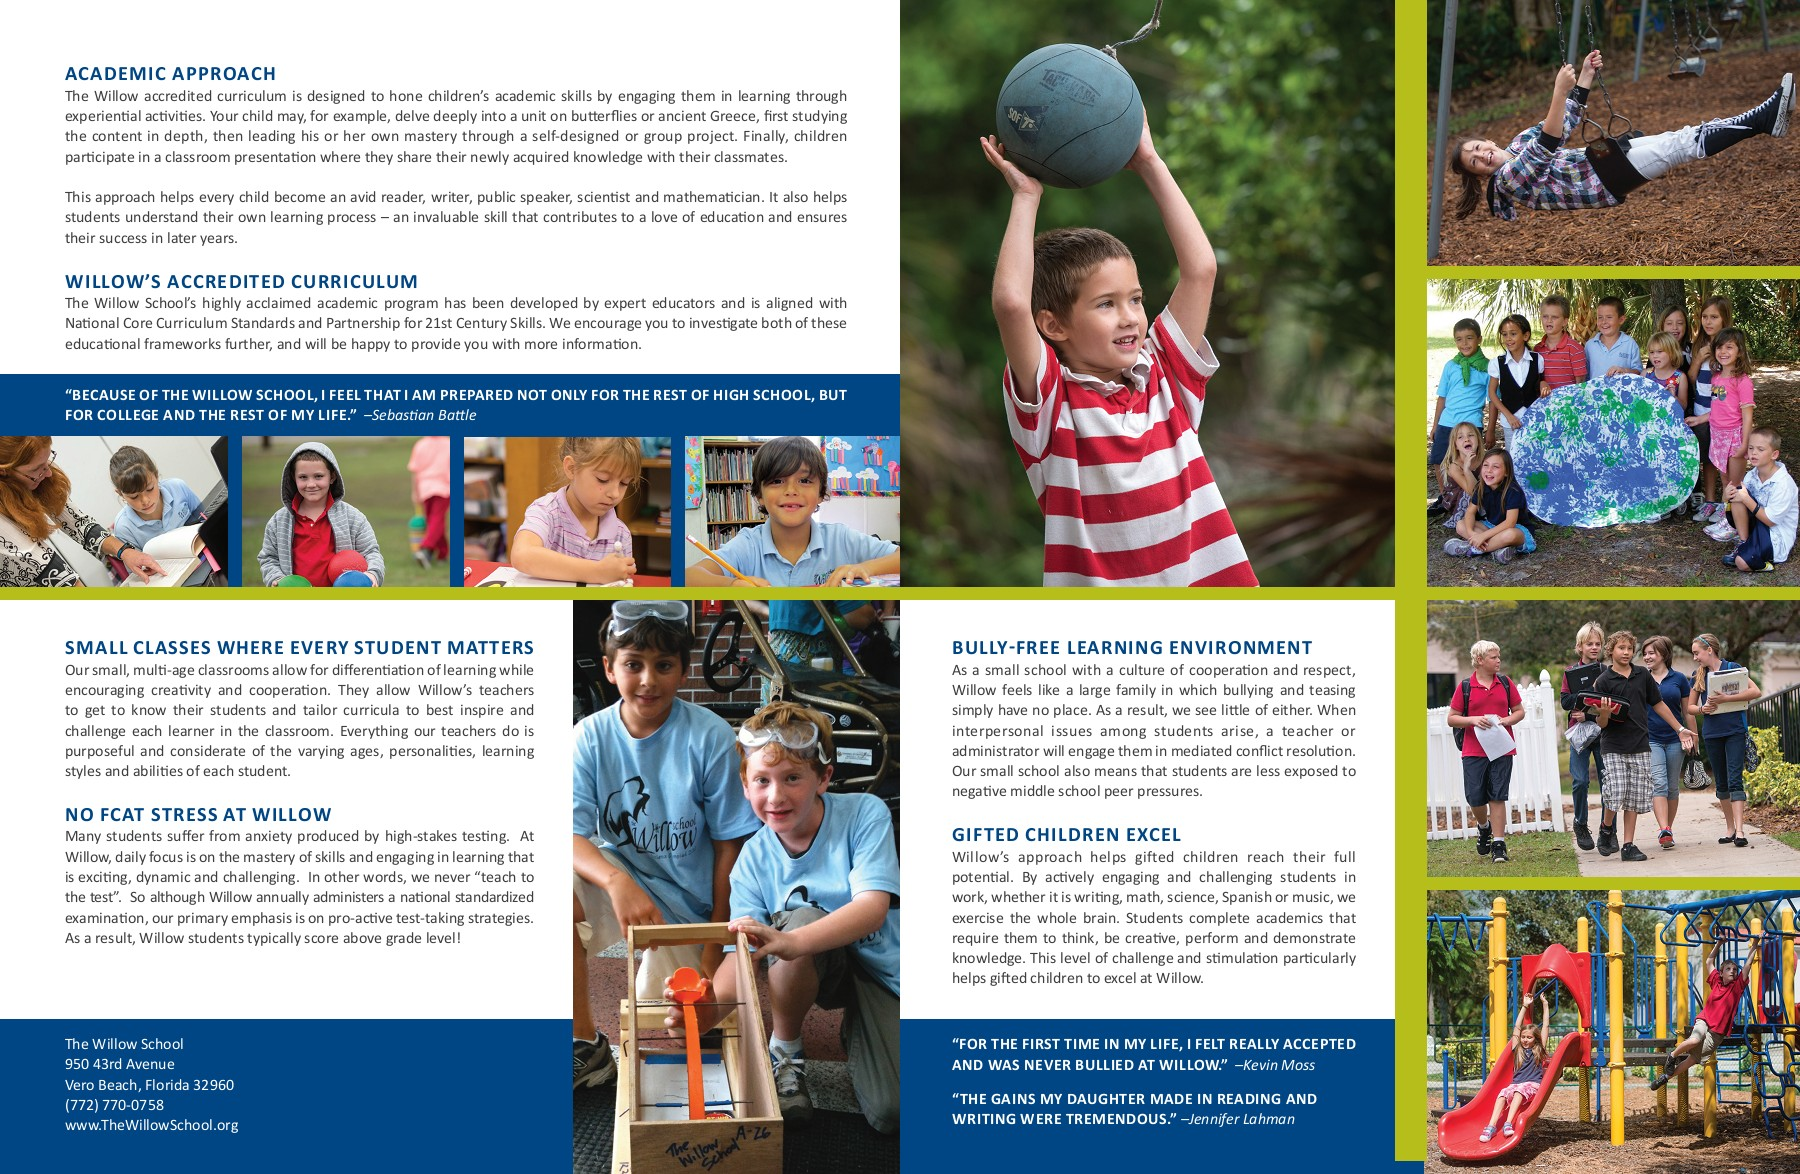 CURRENTWillow K-8 brochure 1-15 Pages 1 - 2 - Text Version | AnyFlip